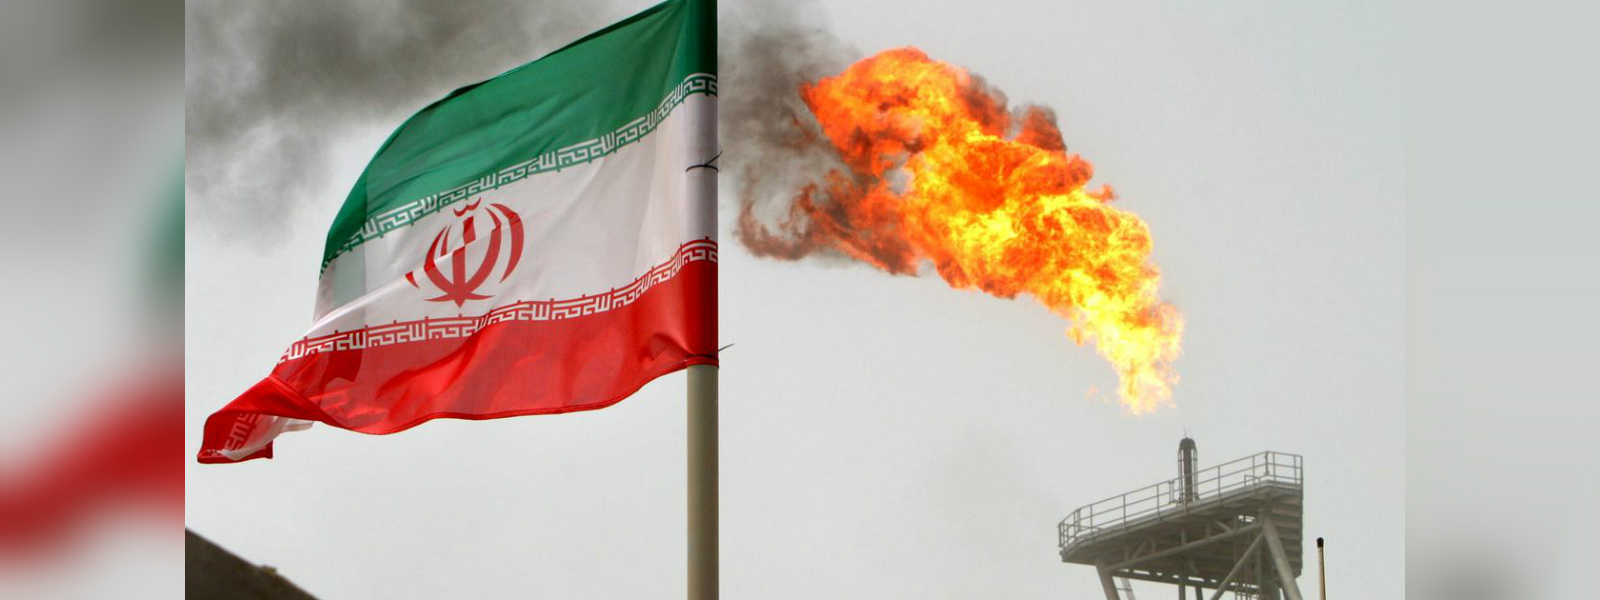 U.S. sanctions Chinese oil buyer over alleged Iran violations